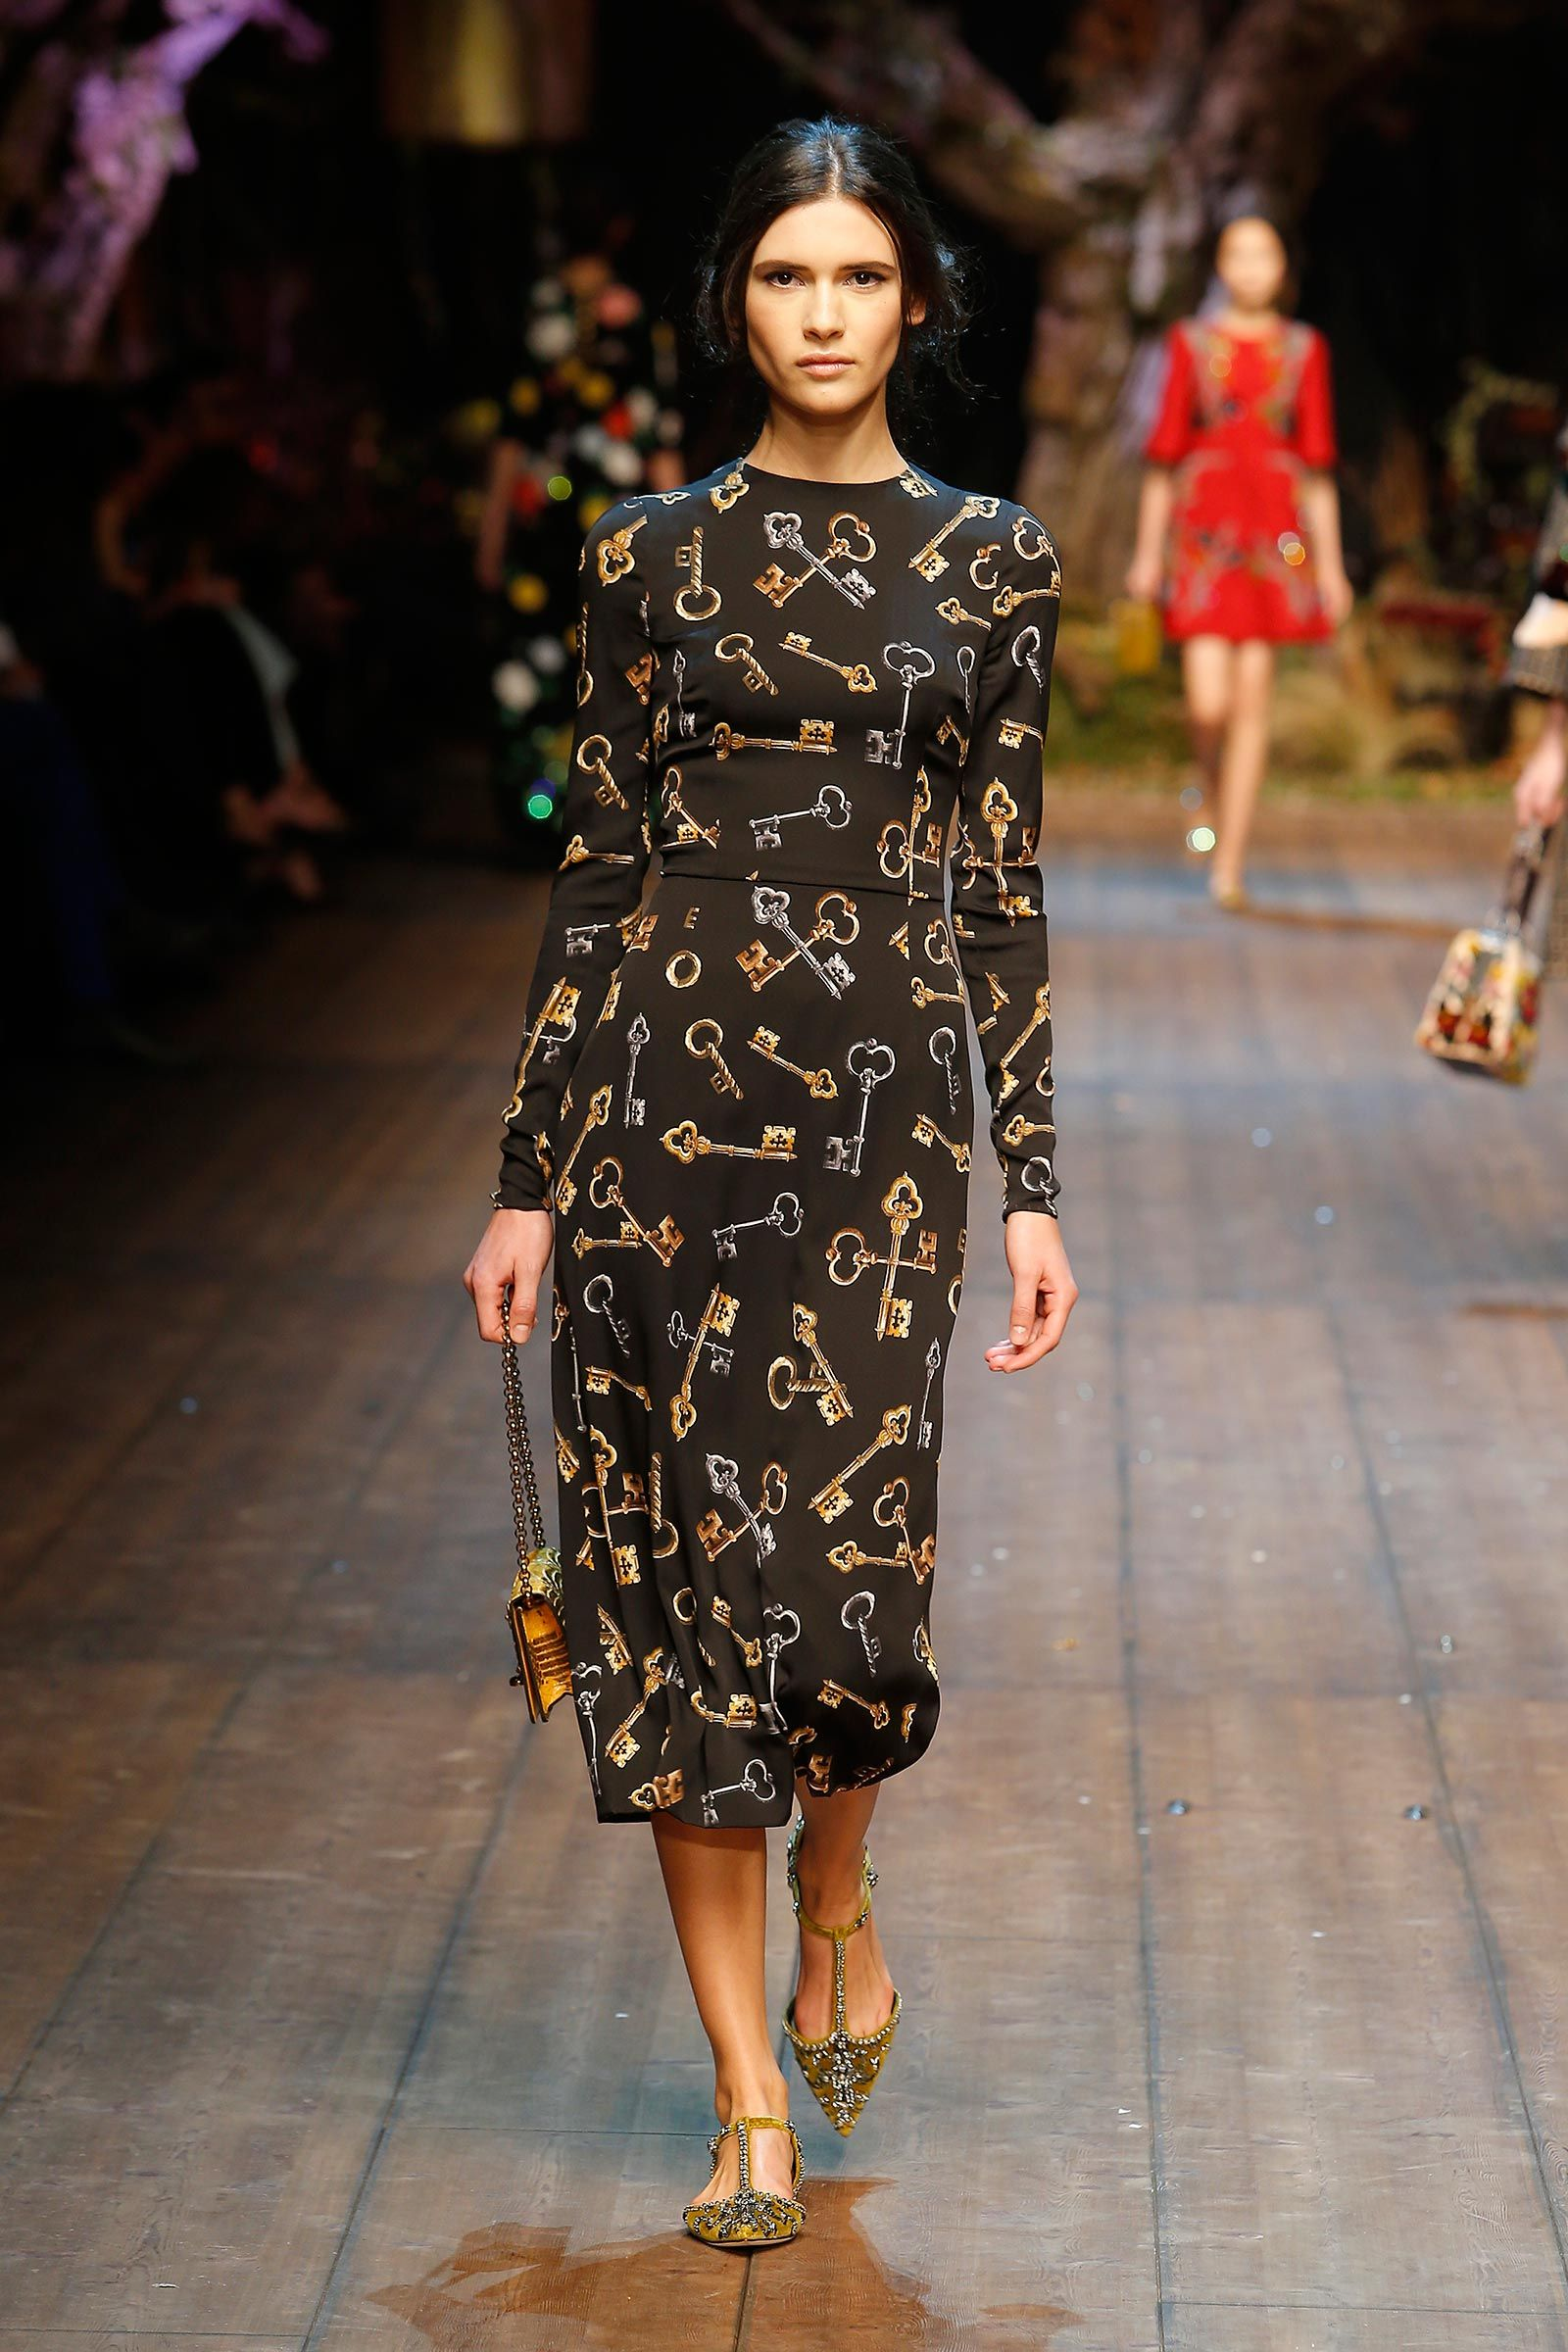 Dolce   Gabbana Woman Catwalk Photo Gallery – Fashion Show Fall Winter 2014  2015 3ffadb37ba8